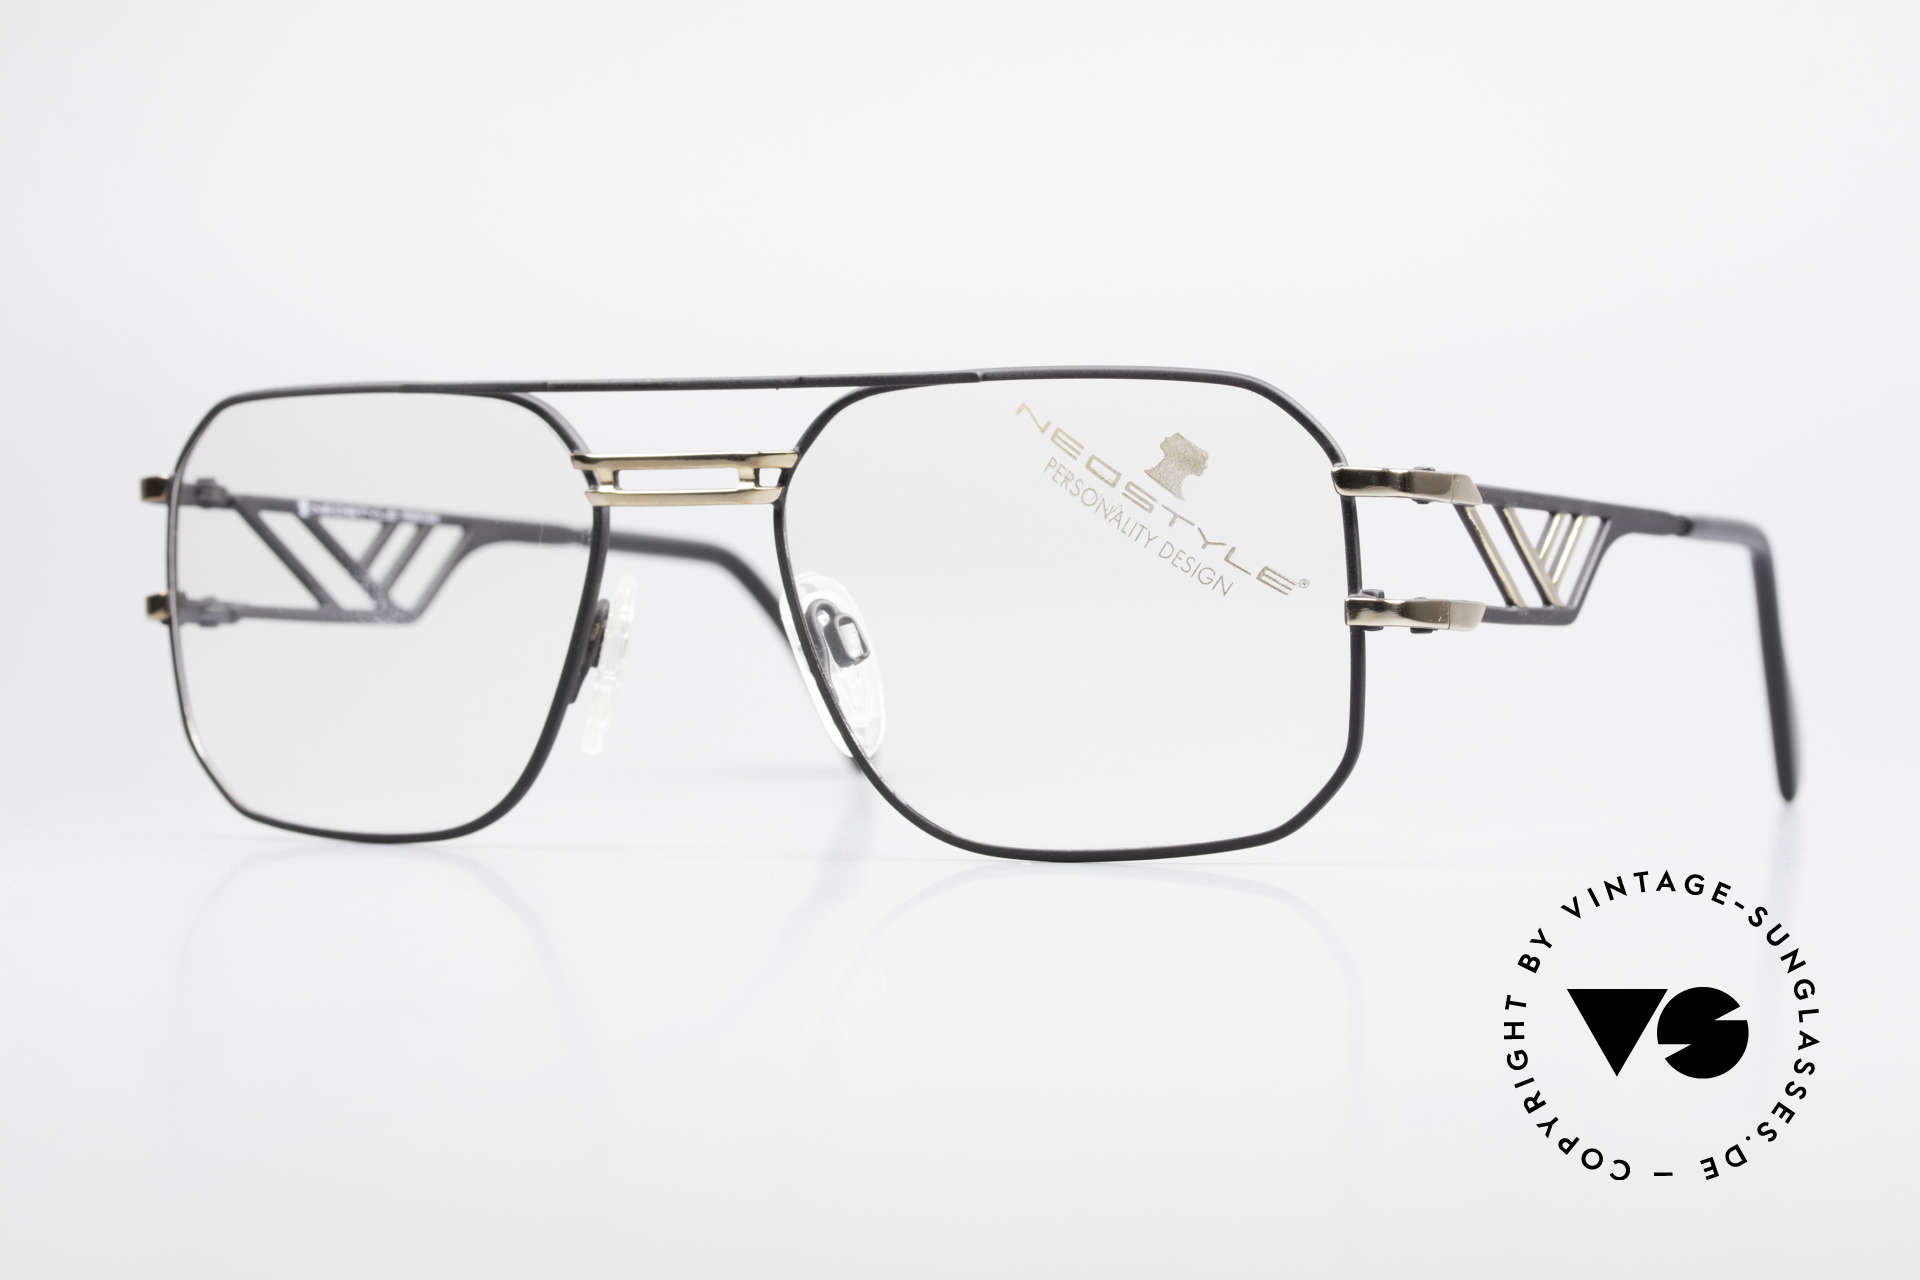 Neostyle Boutique 306 Champion Vintage Frame 80s, monolithic vintage 80's eyeglasses by Neostyle, Made for Men